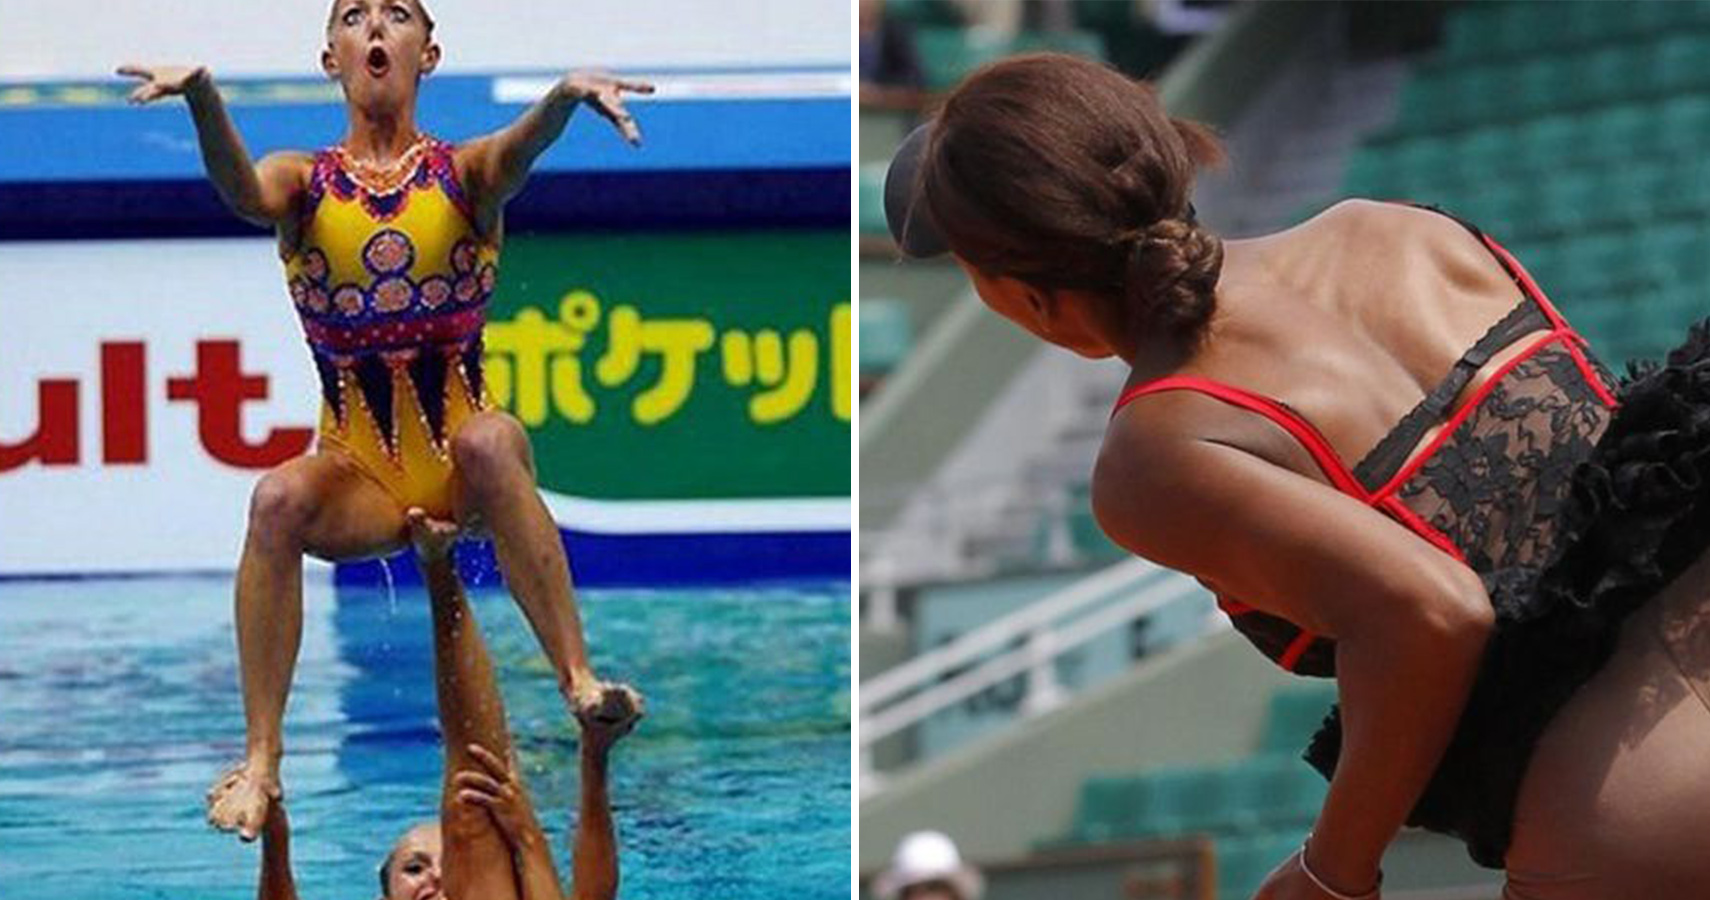 Most Embarrassing Pictures Of Female Athletes Ever Taken